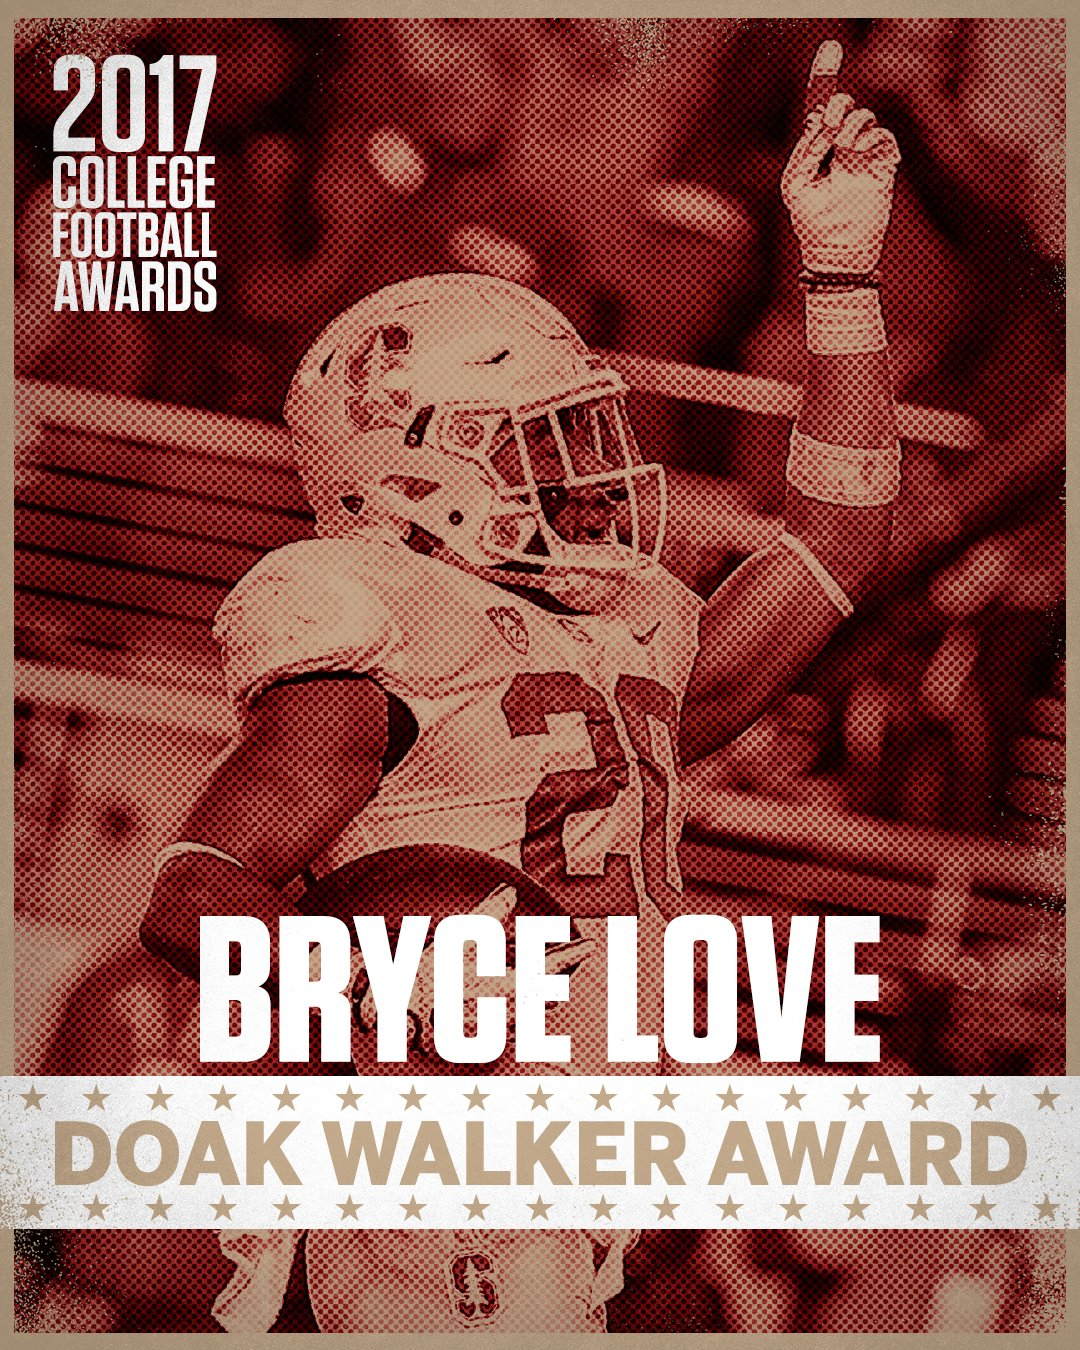 Stanford's Bryce Love wins the Doak Walker Award as the nation's top running back. https://t.co/U9wPE62WZl